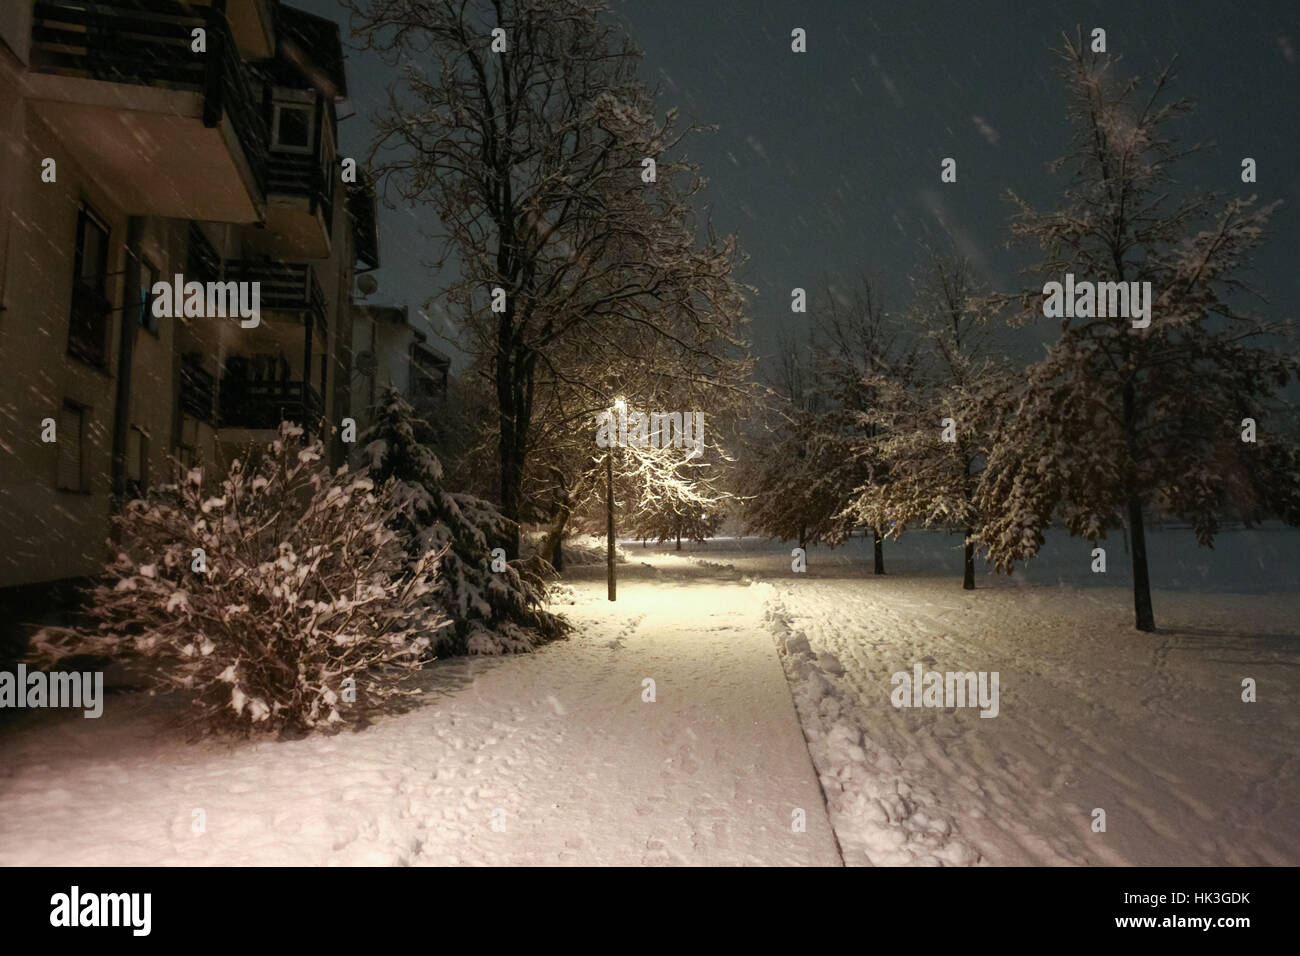 A street covered in snow during snowfall at night. - Stock Image